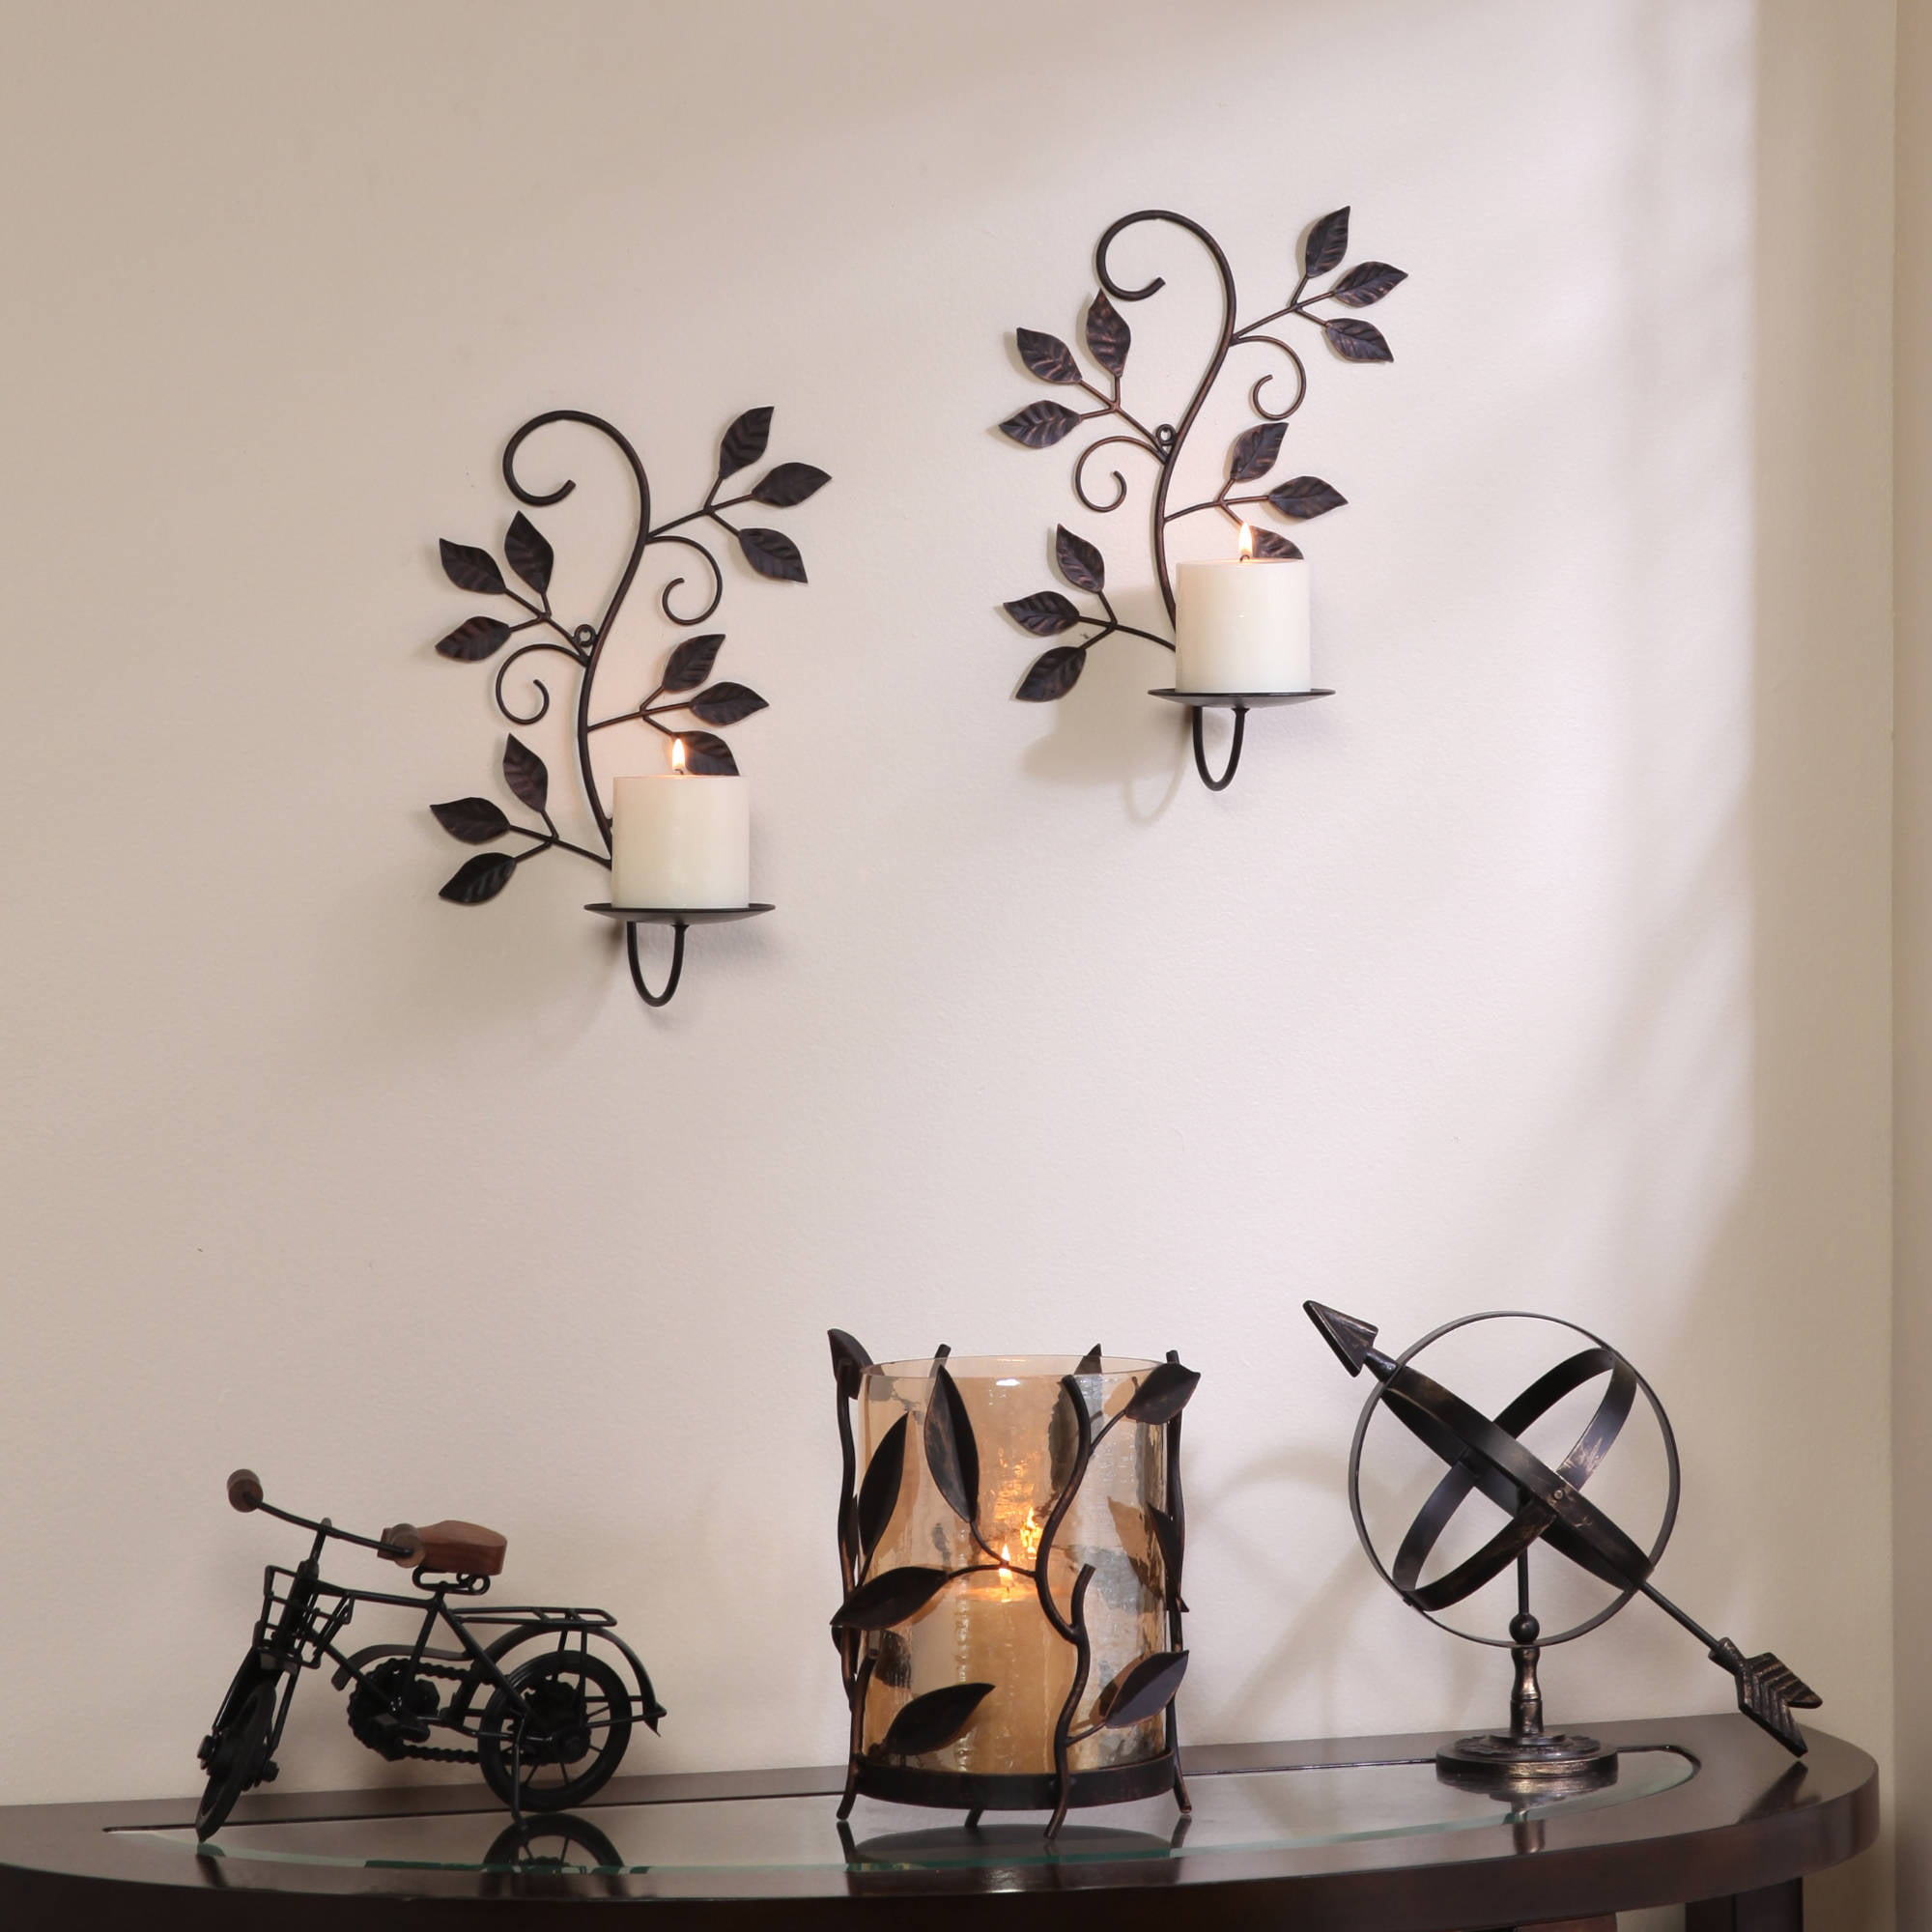 Better Homes and Gardens Scrolled Leaves Wall Sconce Pillar Holders, Set of 2 by